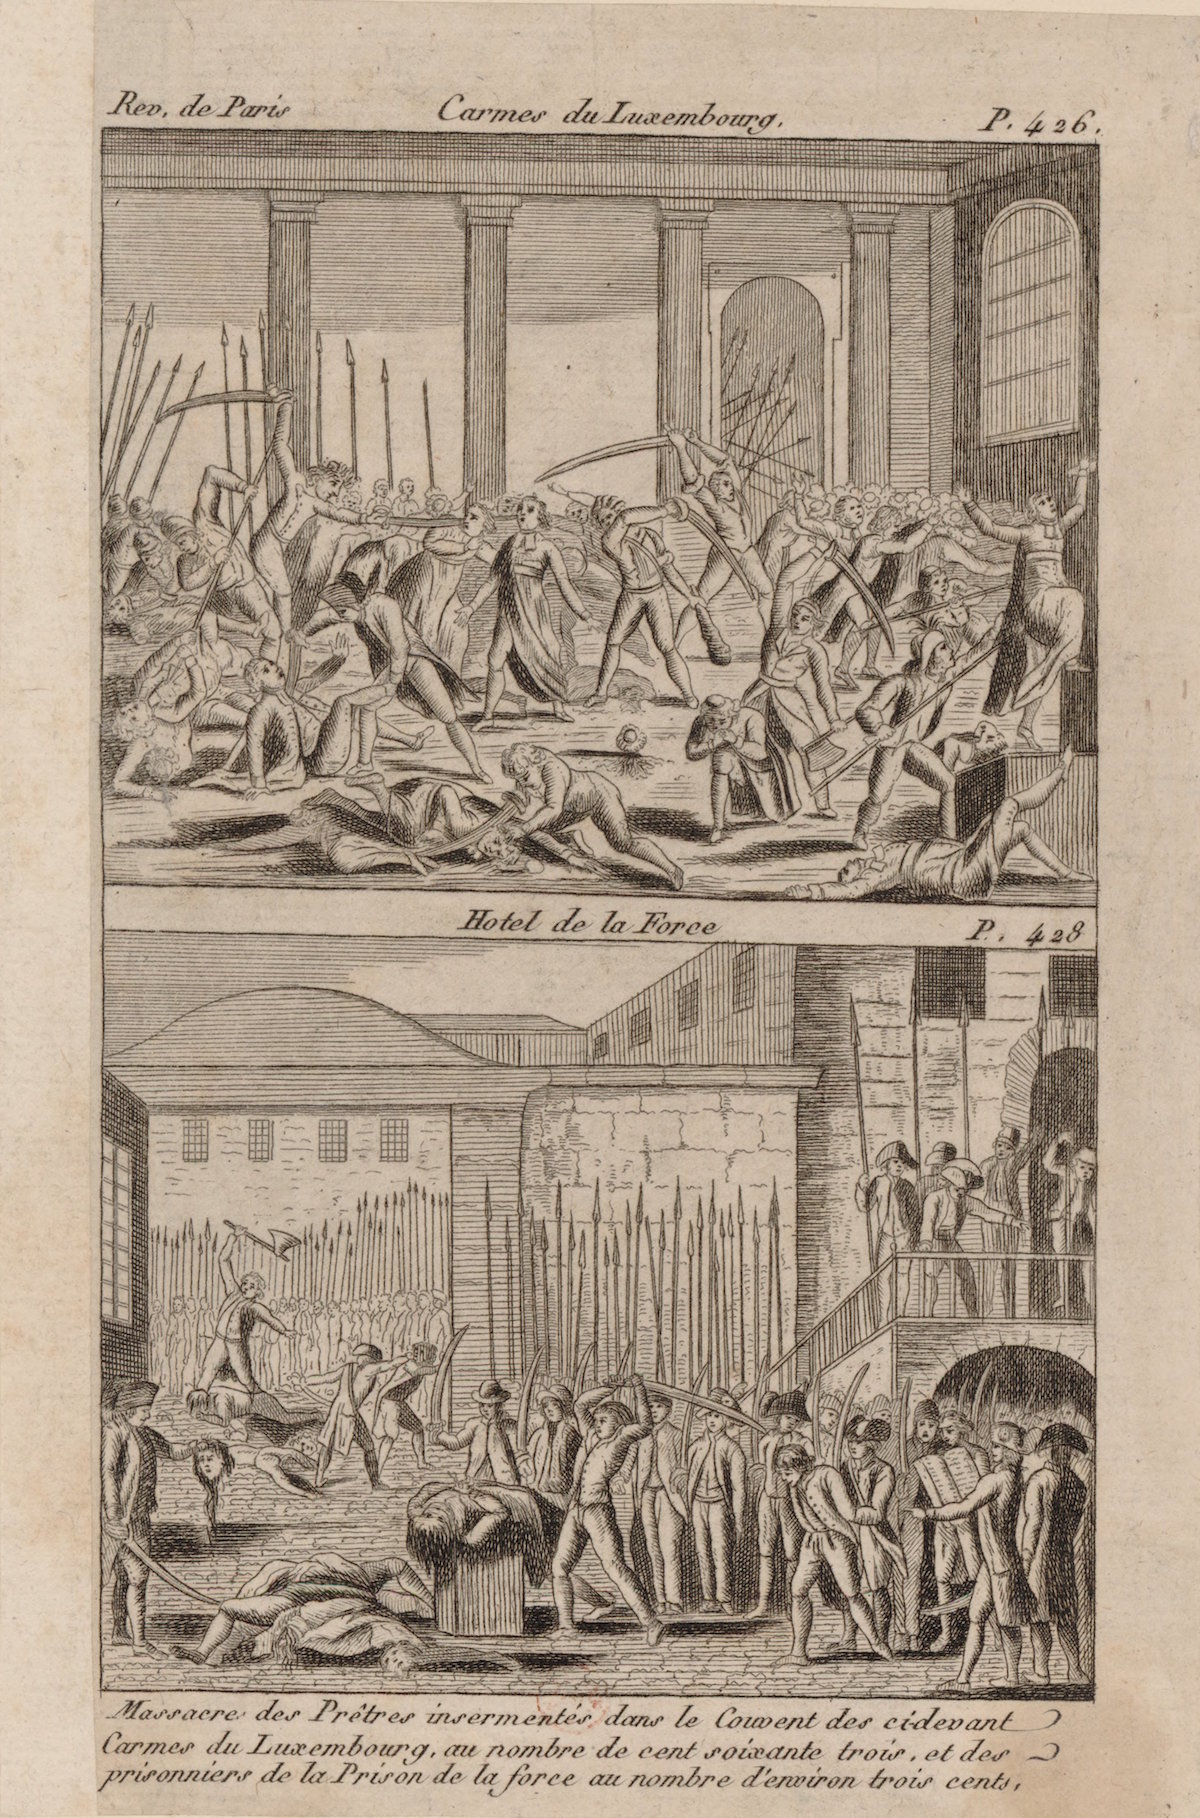 Print of crowd attacking and killing clergy and prisoners